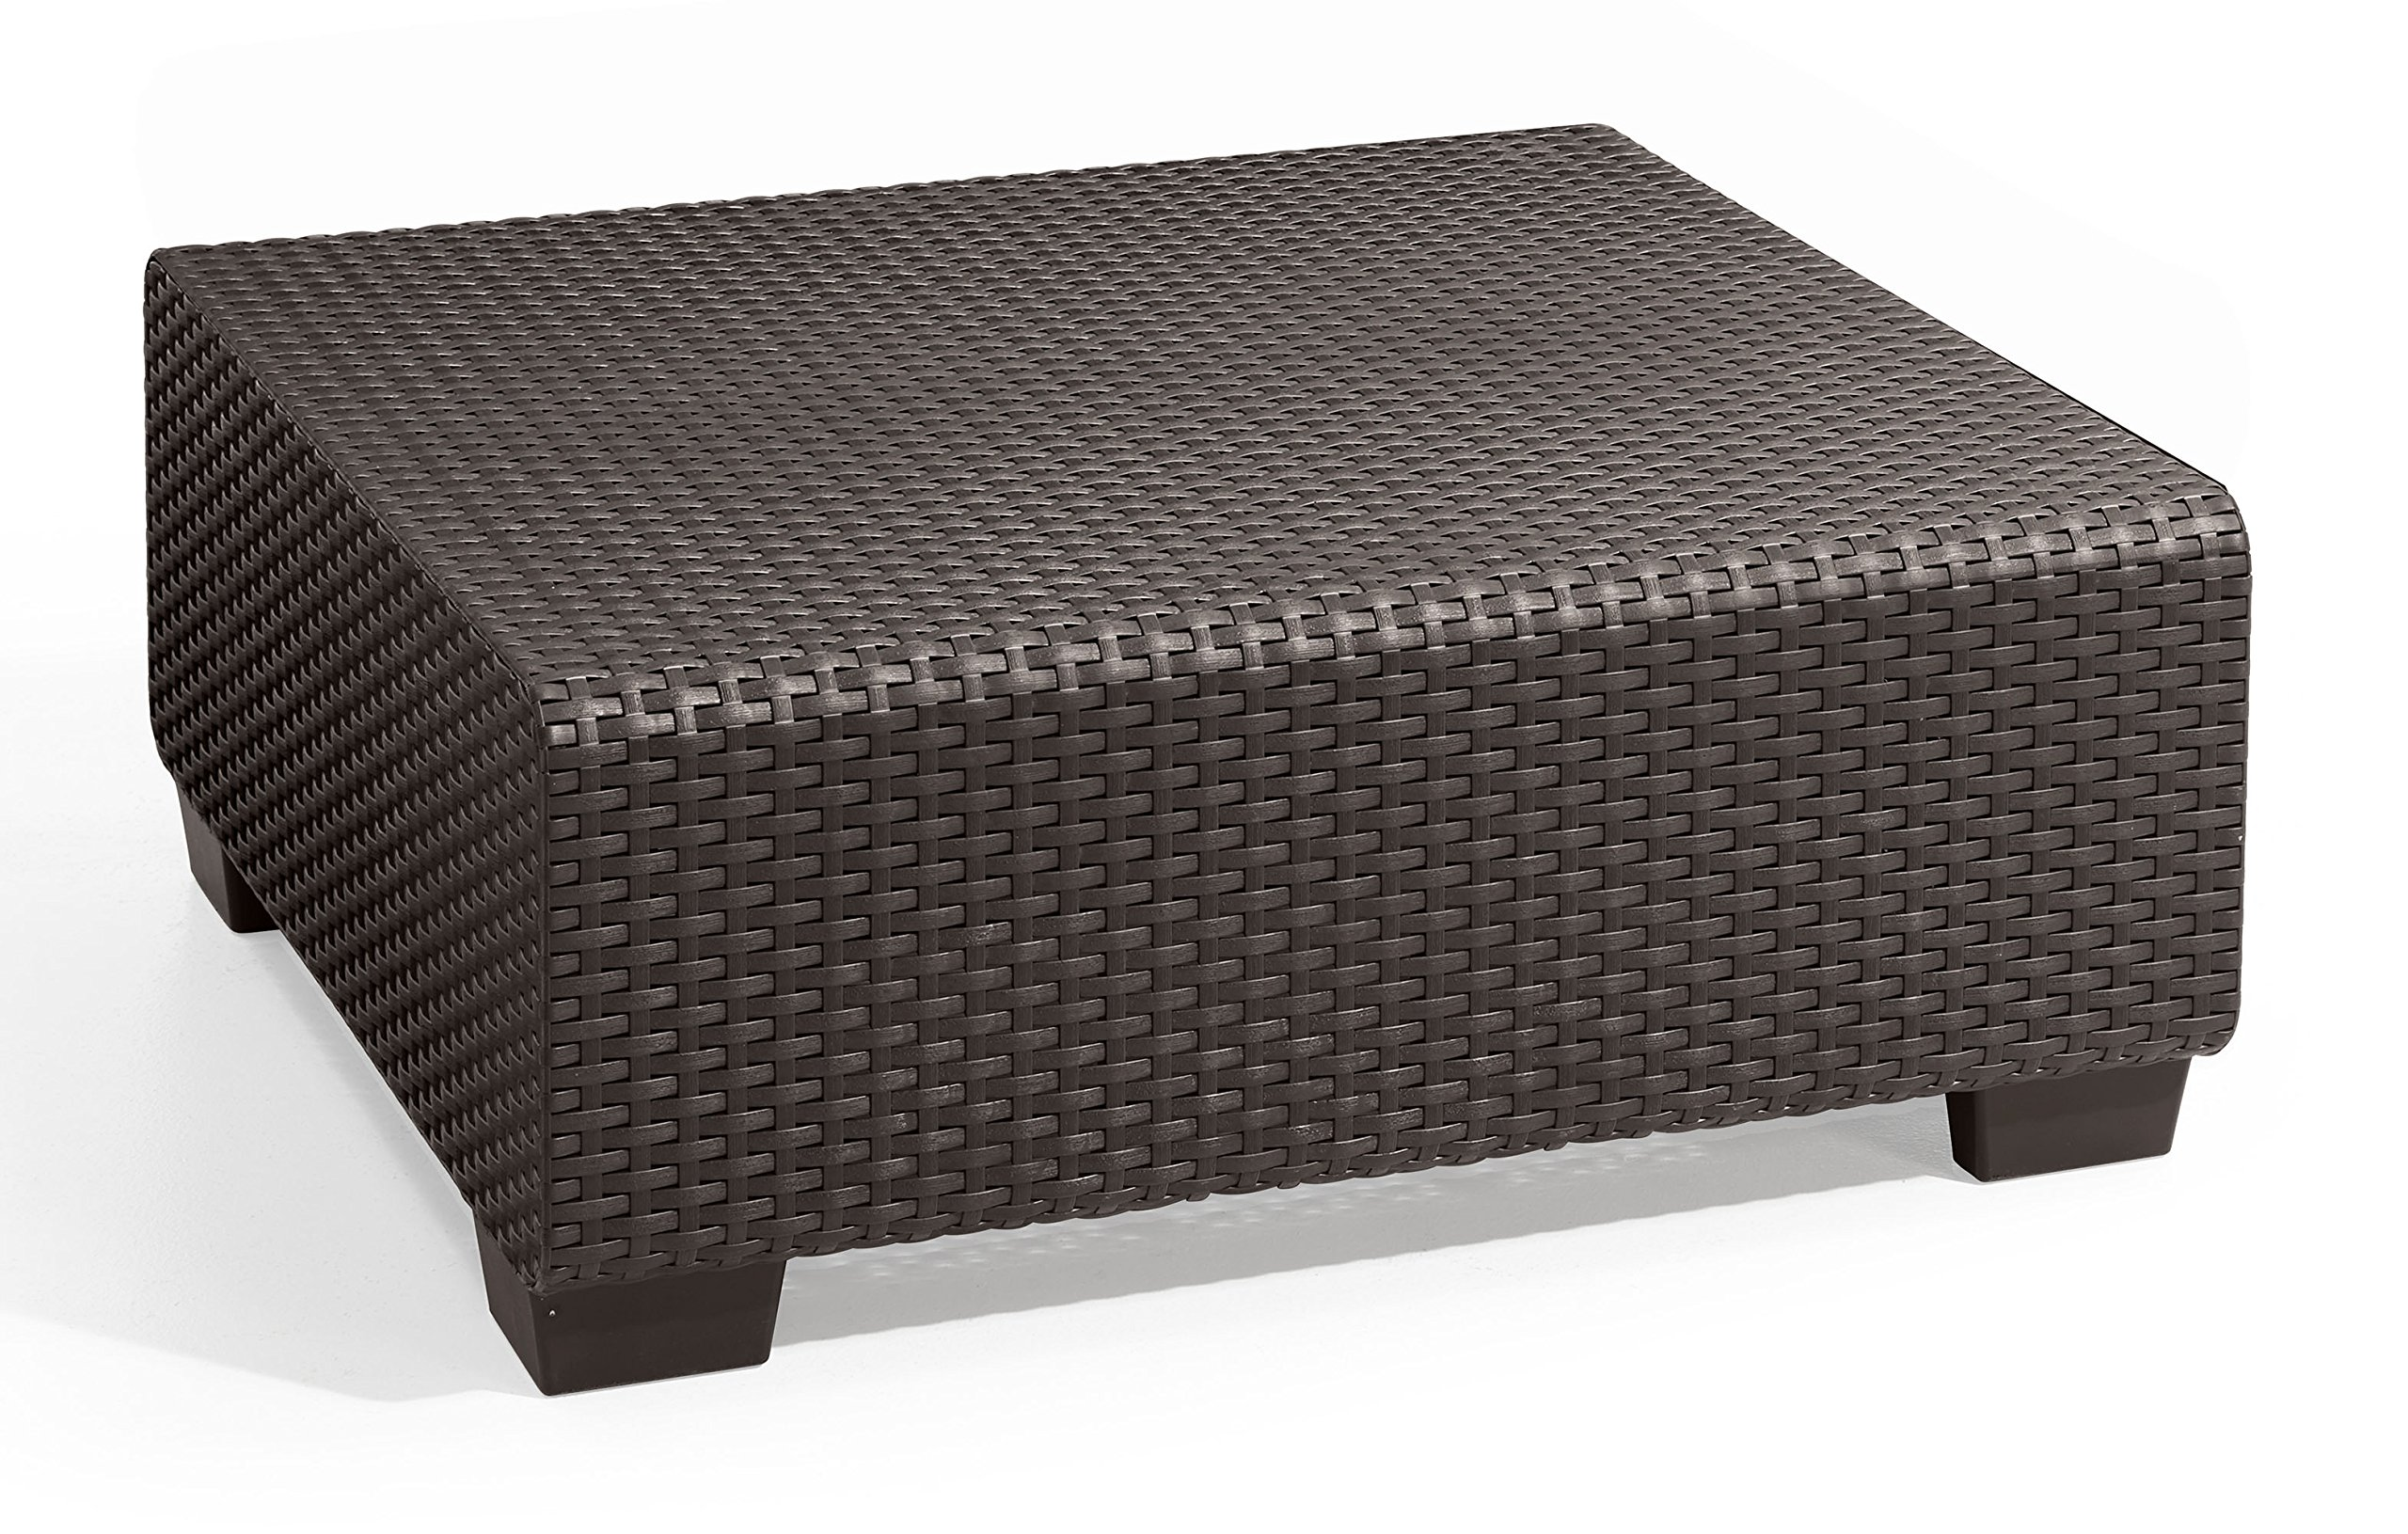 Keter Salta Coffee Table Modern All Weather Outdoor Patio Garden Backyard Furniture, Rich Brown by Keter